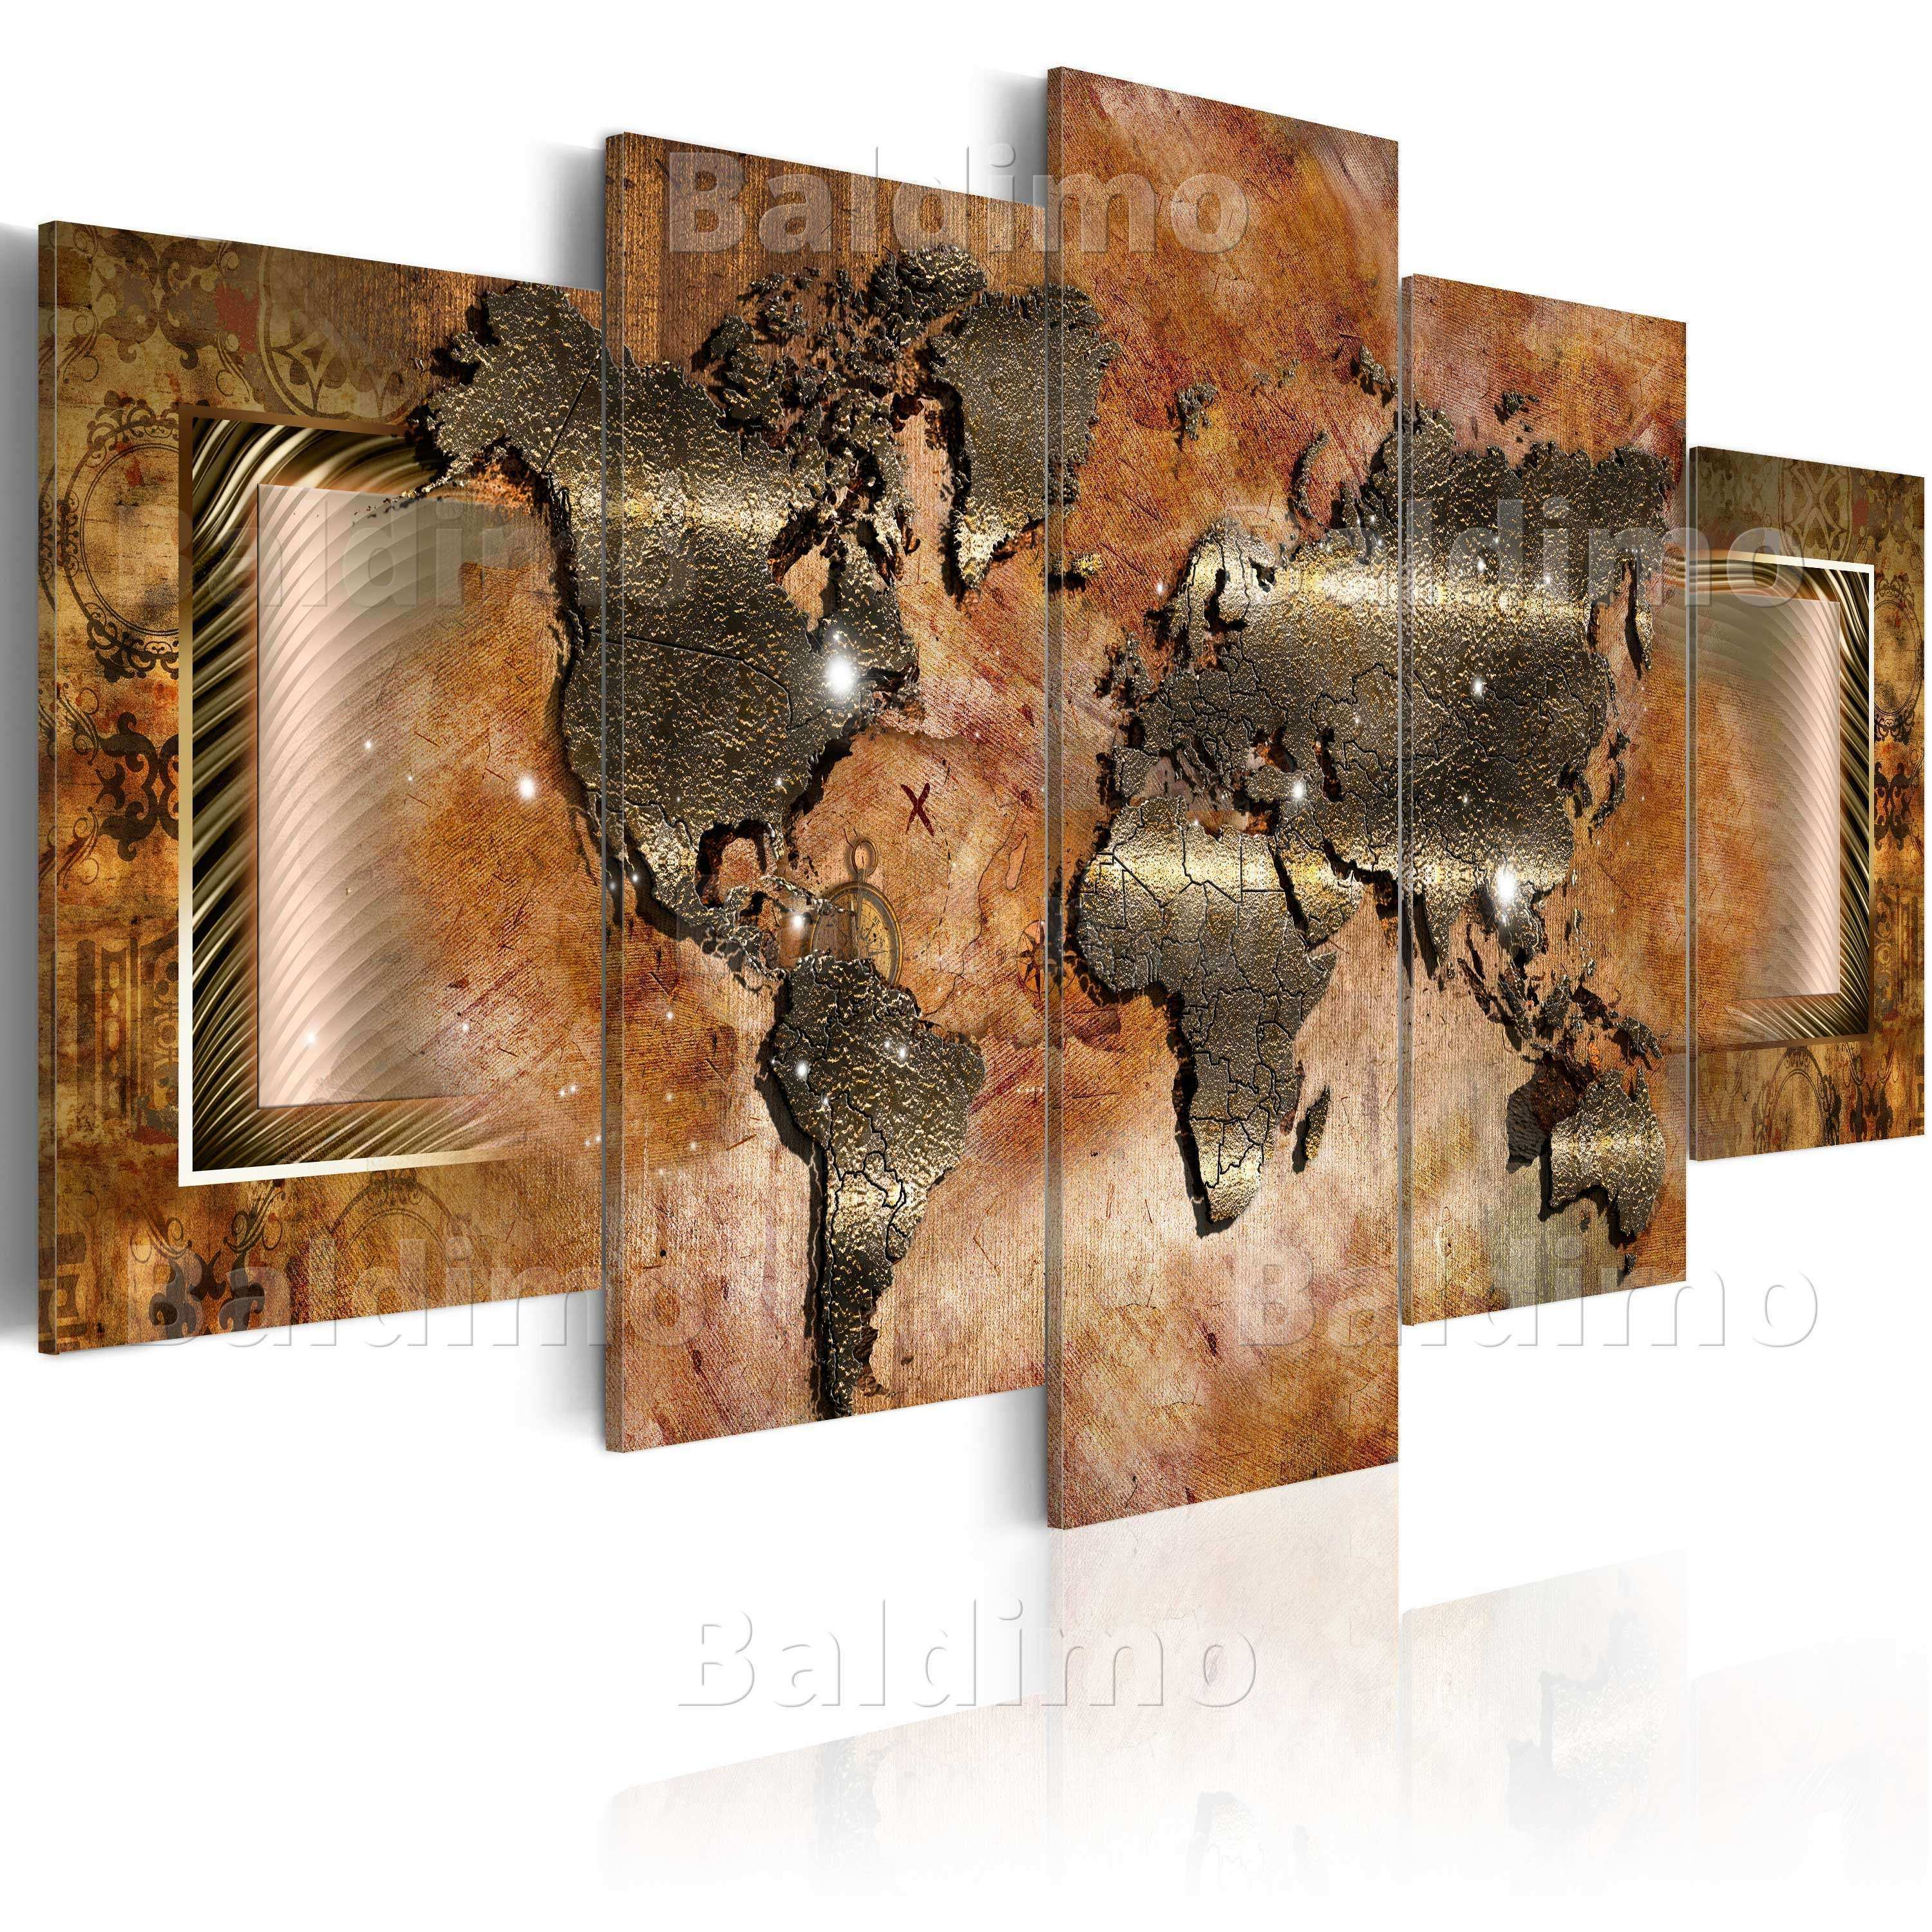 LARGE CANVAS WALL ART PRINT IMAGE PICTURE PHOTO WORLD MAP